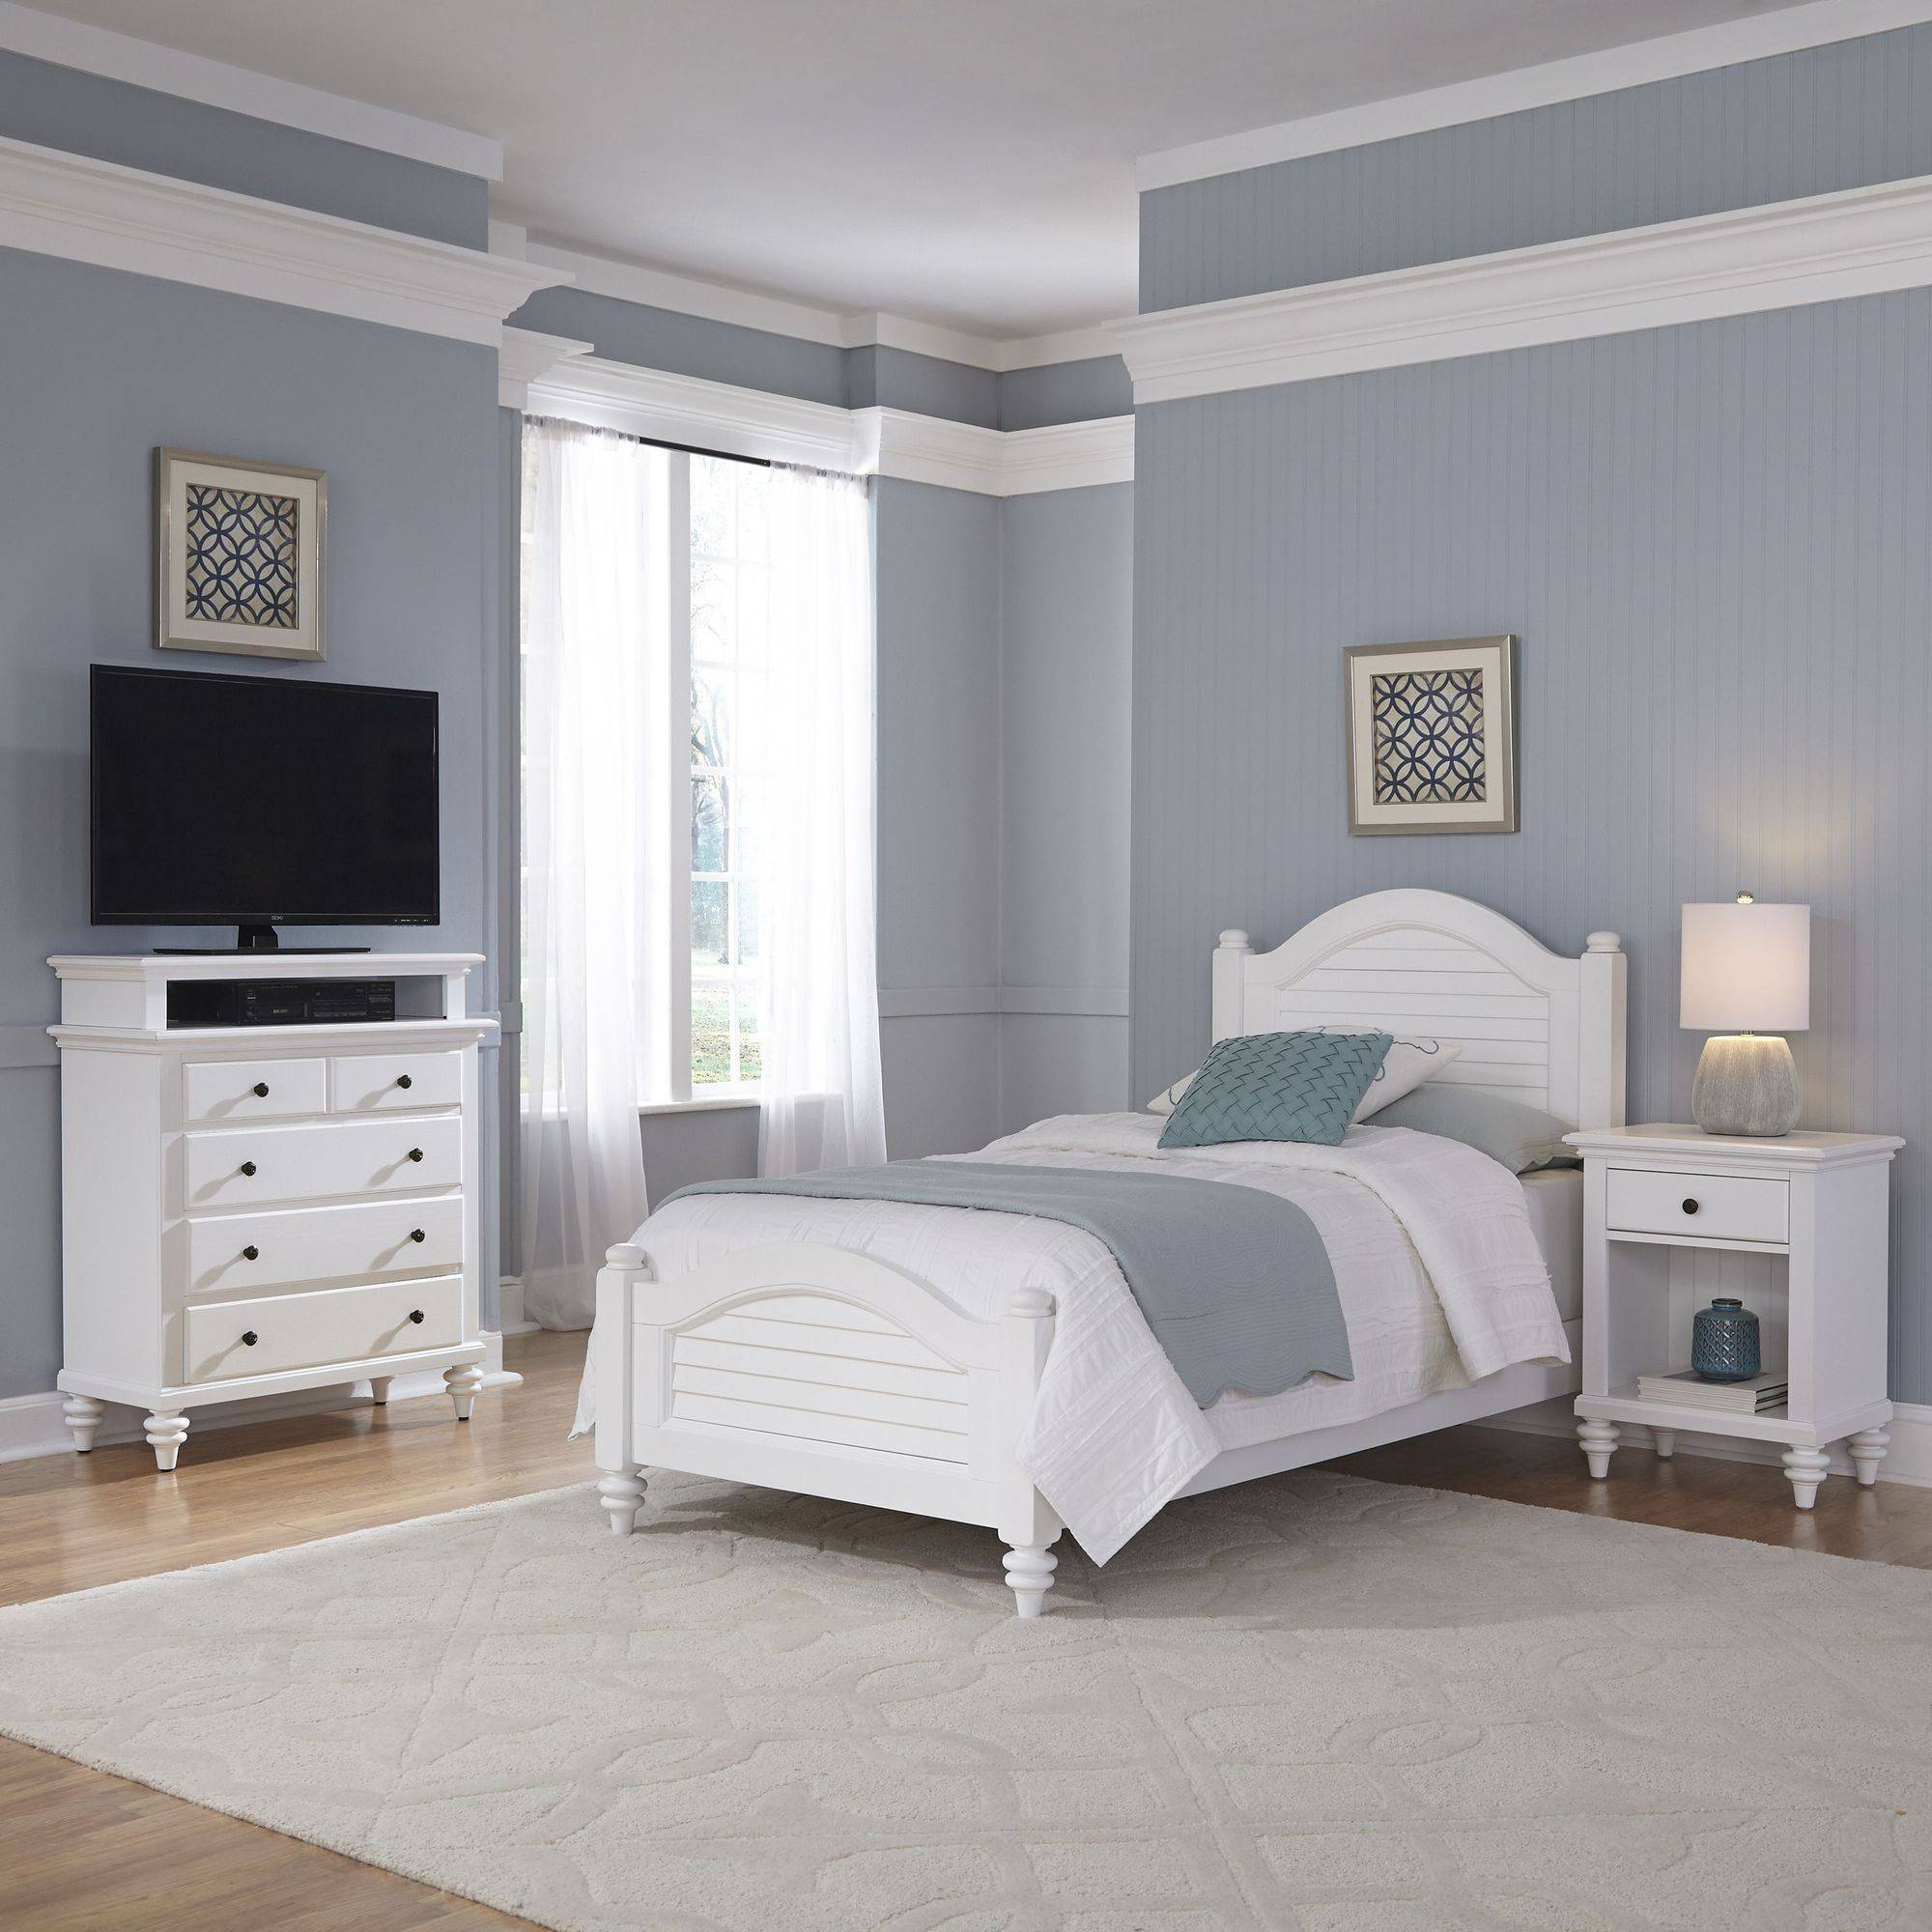 Home Styles Bermuda Bedroom Furniture Collection Brushed White Finish